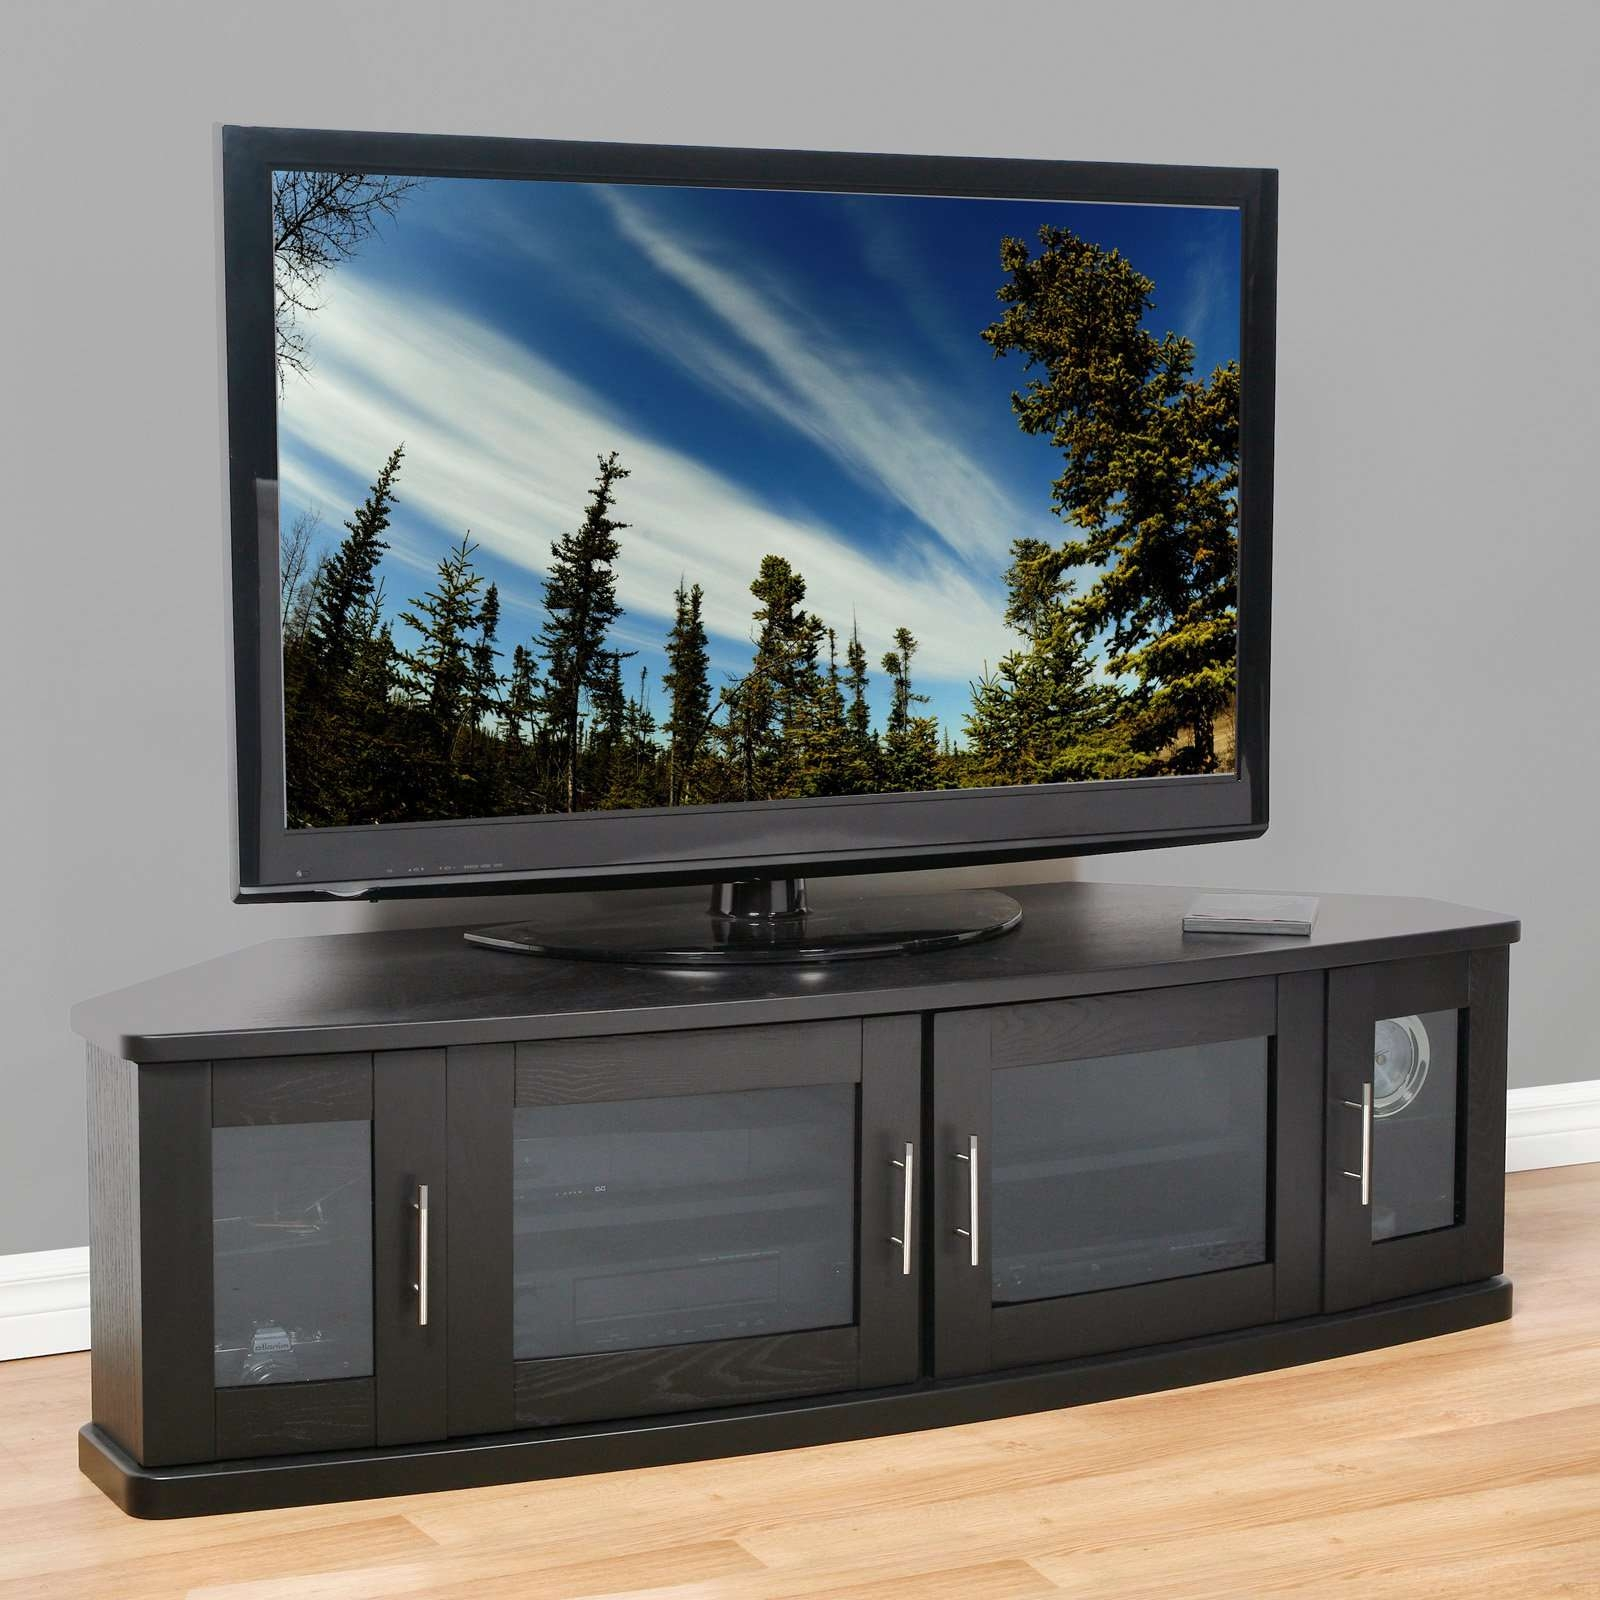 Image Gallery Of Black Corner Tv Cabinets With Glass Doors View 2